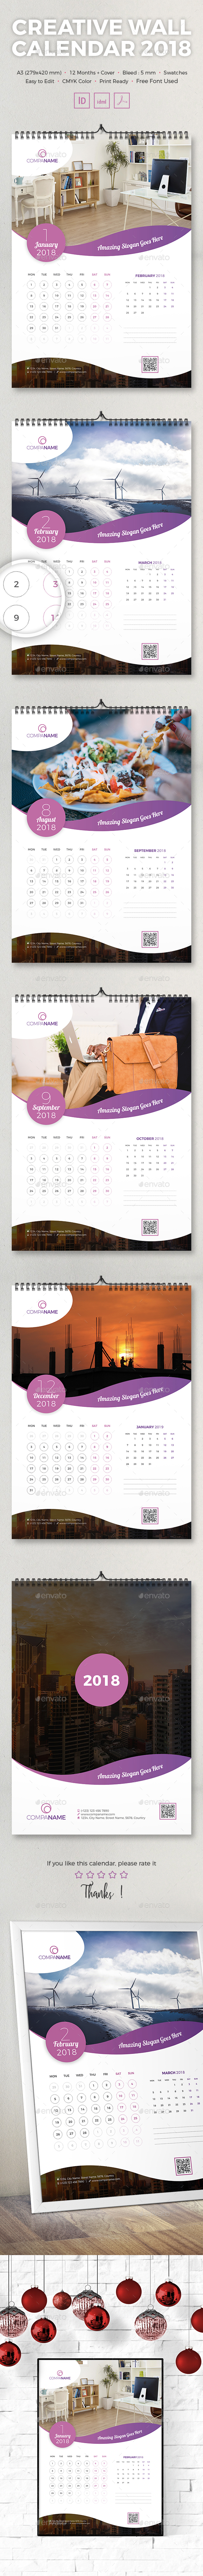 GraphicRiver Creative Wall Calendar 2018 21123159